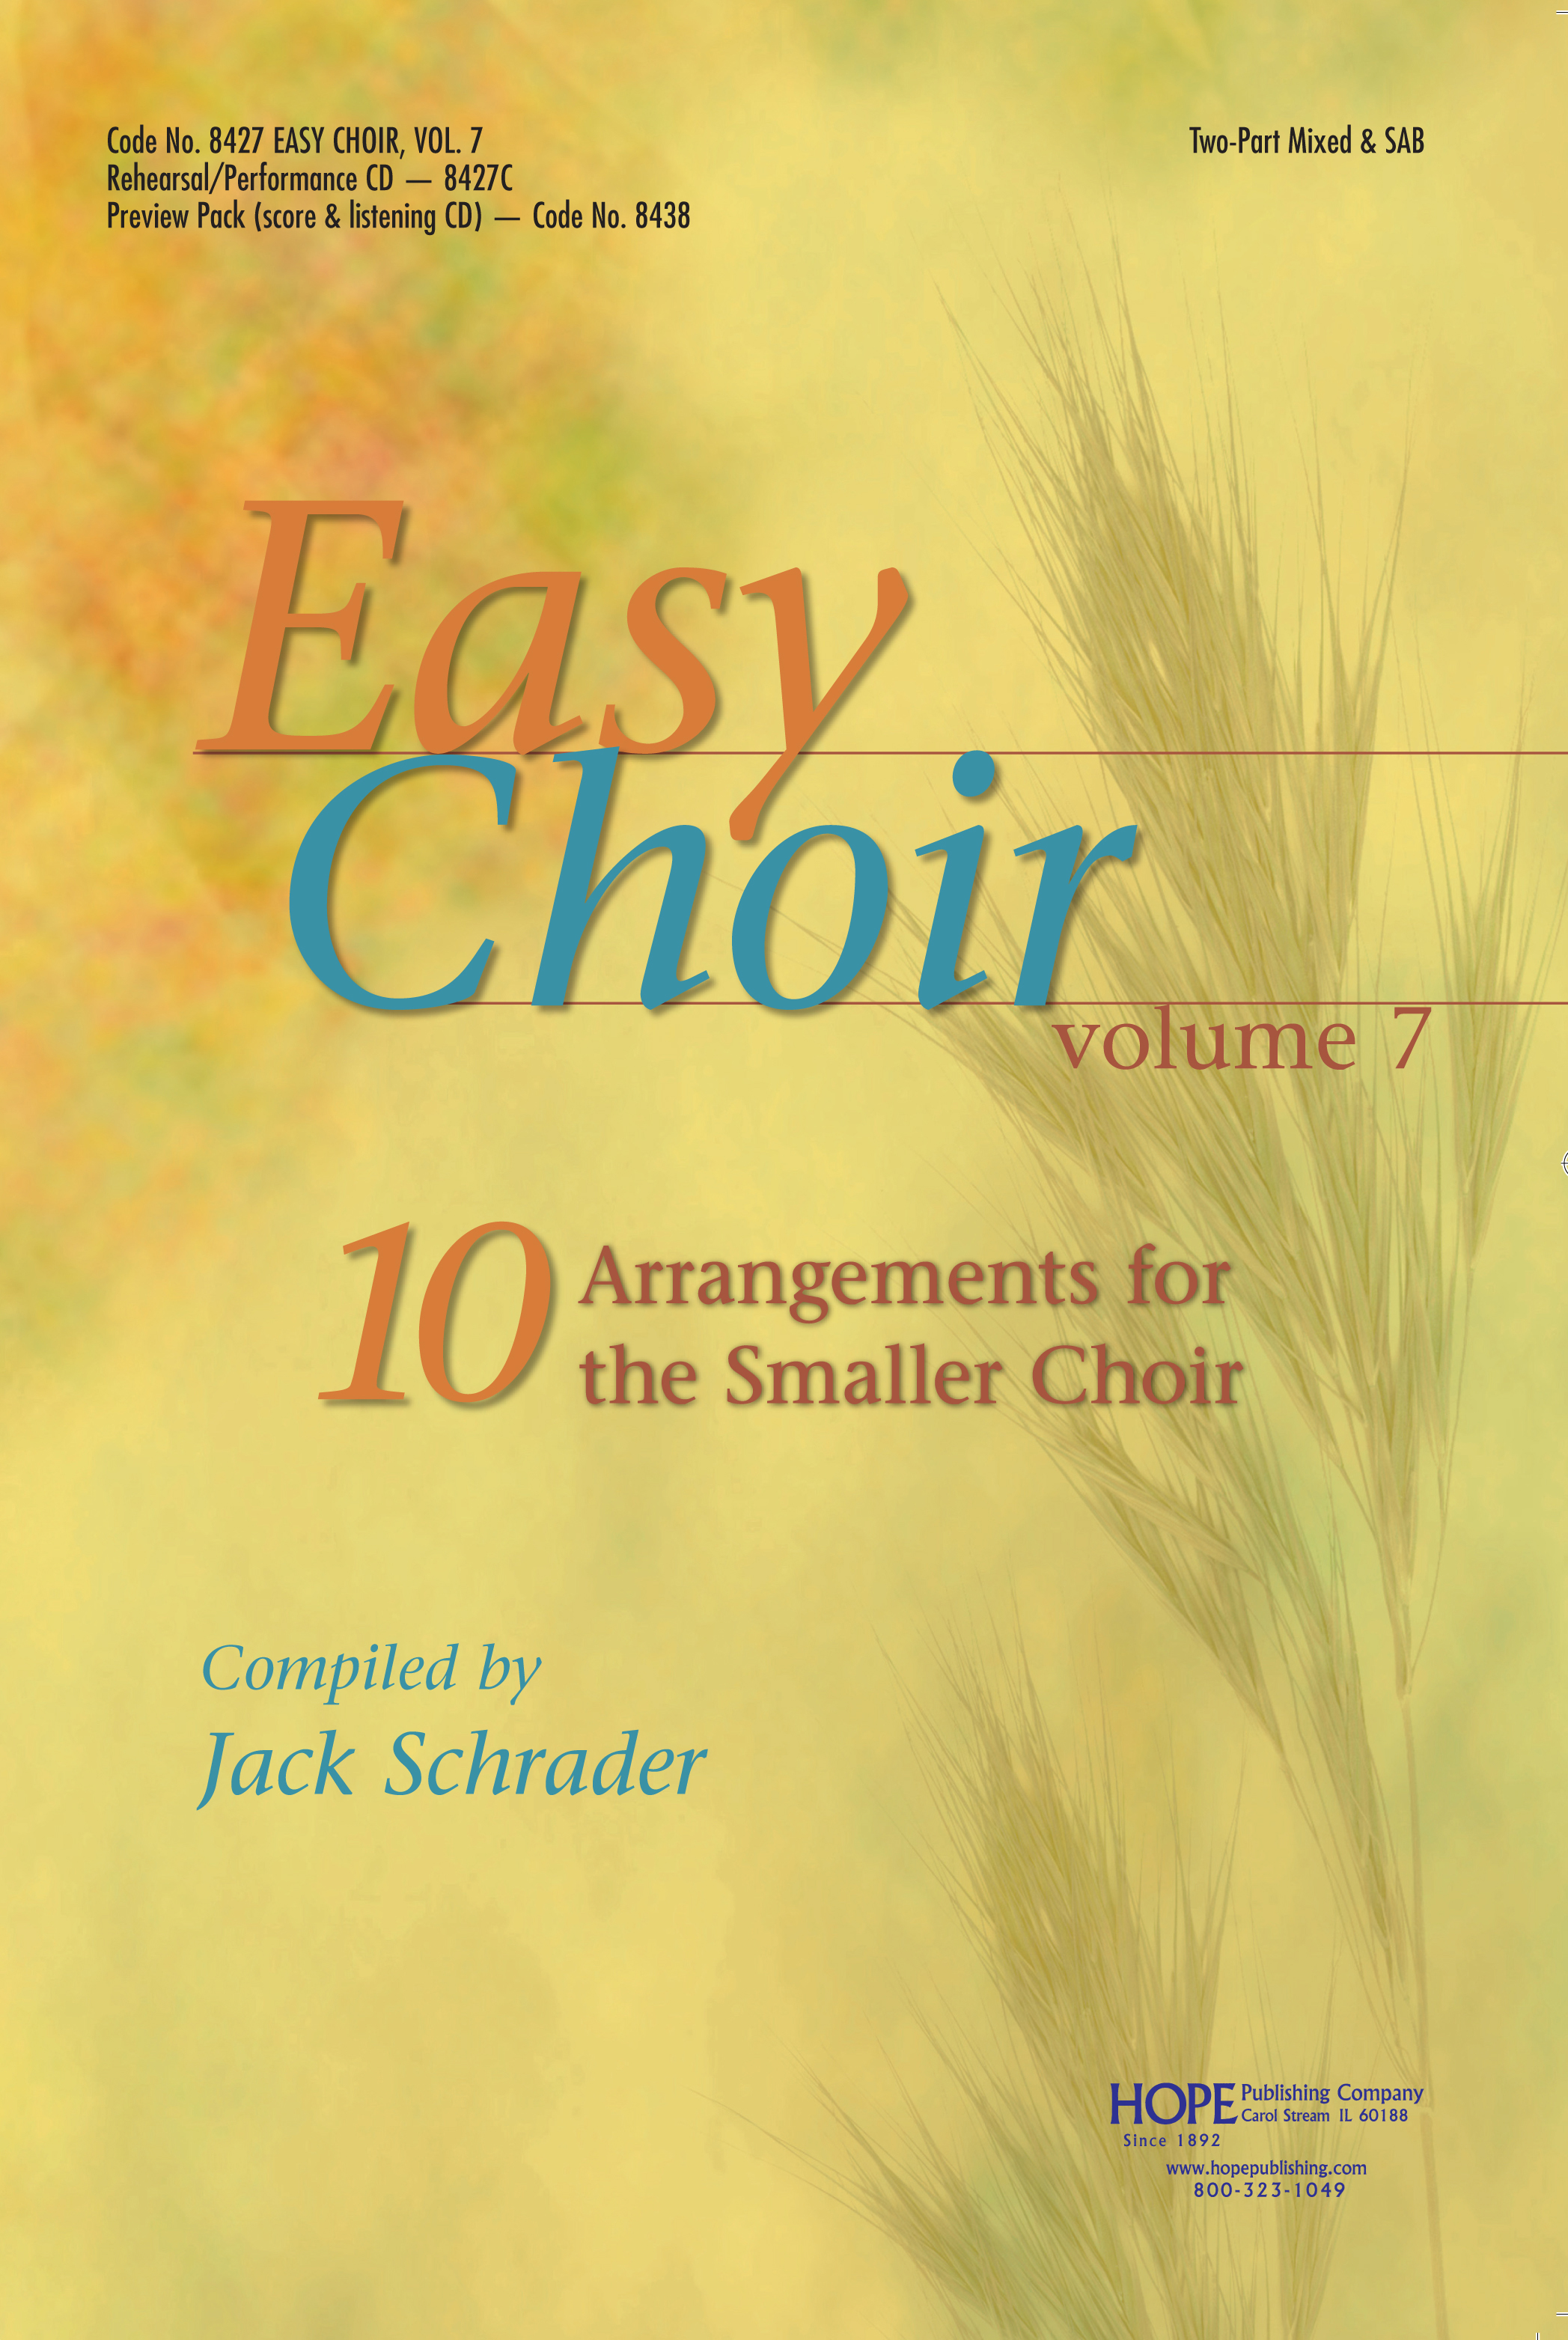 Easy Choir Vol. 7 - Score Cover Image